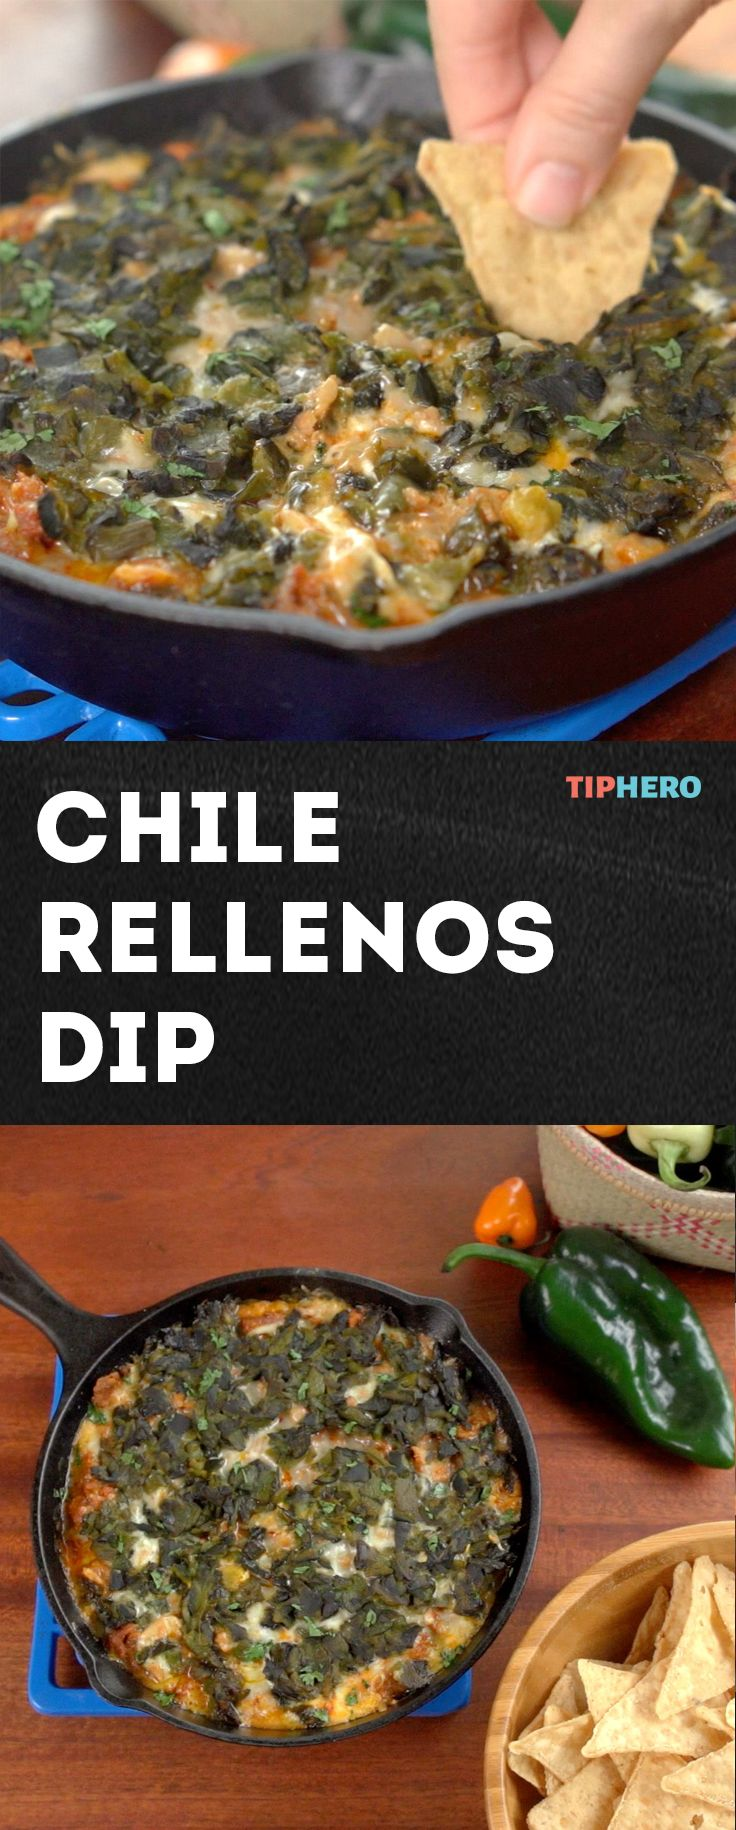 Chile Rellenos Dip Recipe |  This spicy skillet dip blends poblano peppers, cream cheese, garlic, Old El Paso™ taco seasoning mix, green chiles and red enchilada sauce, Mexican chorizo, and Monterey Jack cheese